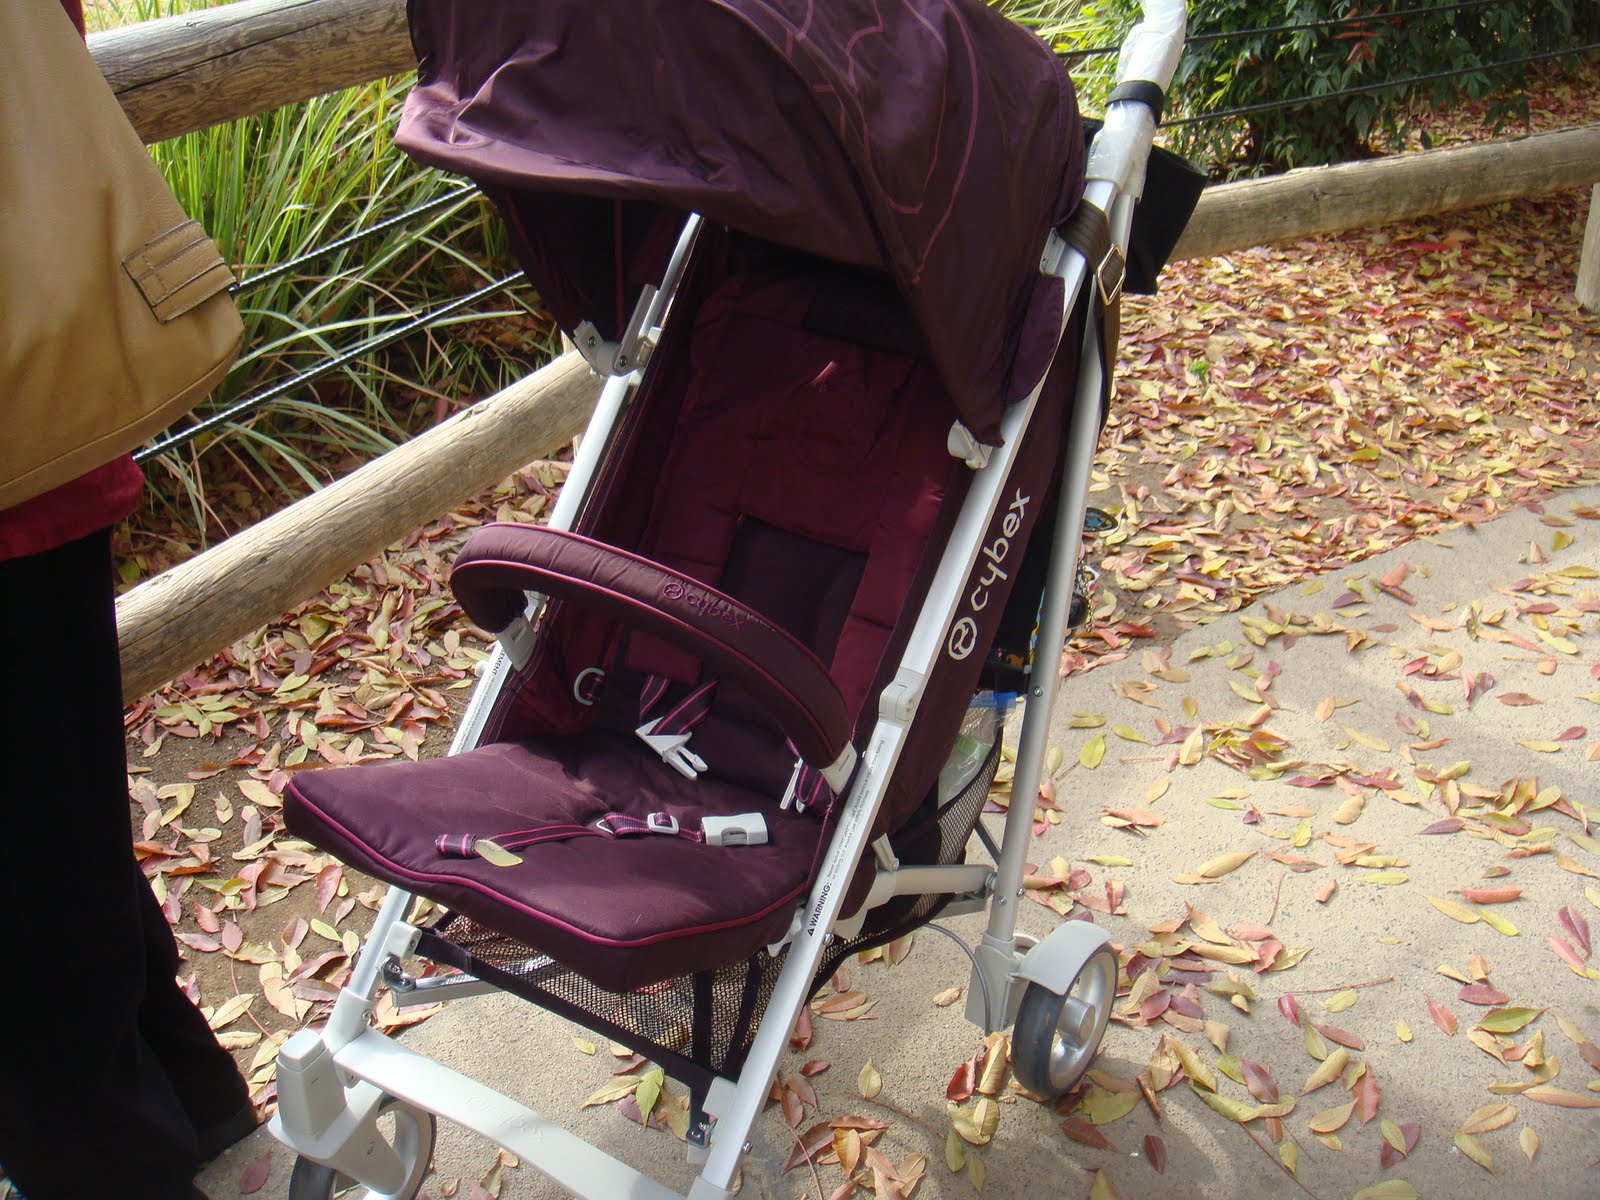 Cybex Umbrella Stroller Review Cybex Callisto Review Strollerqueen